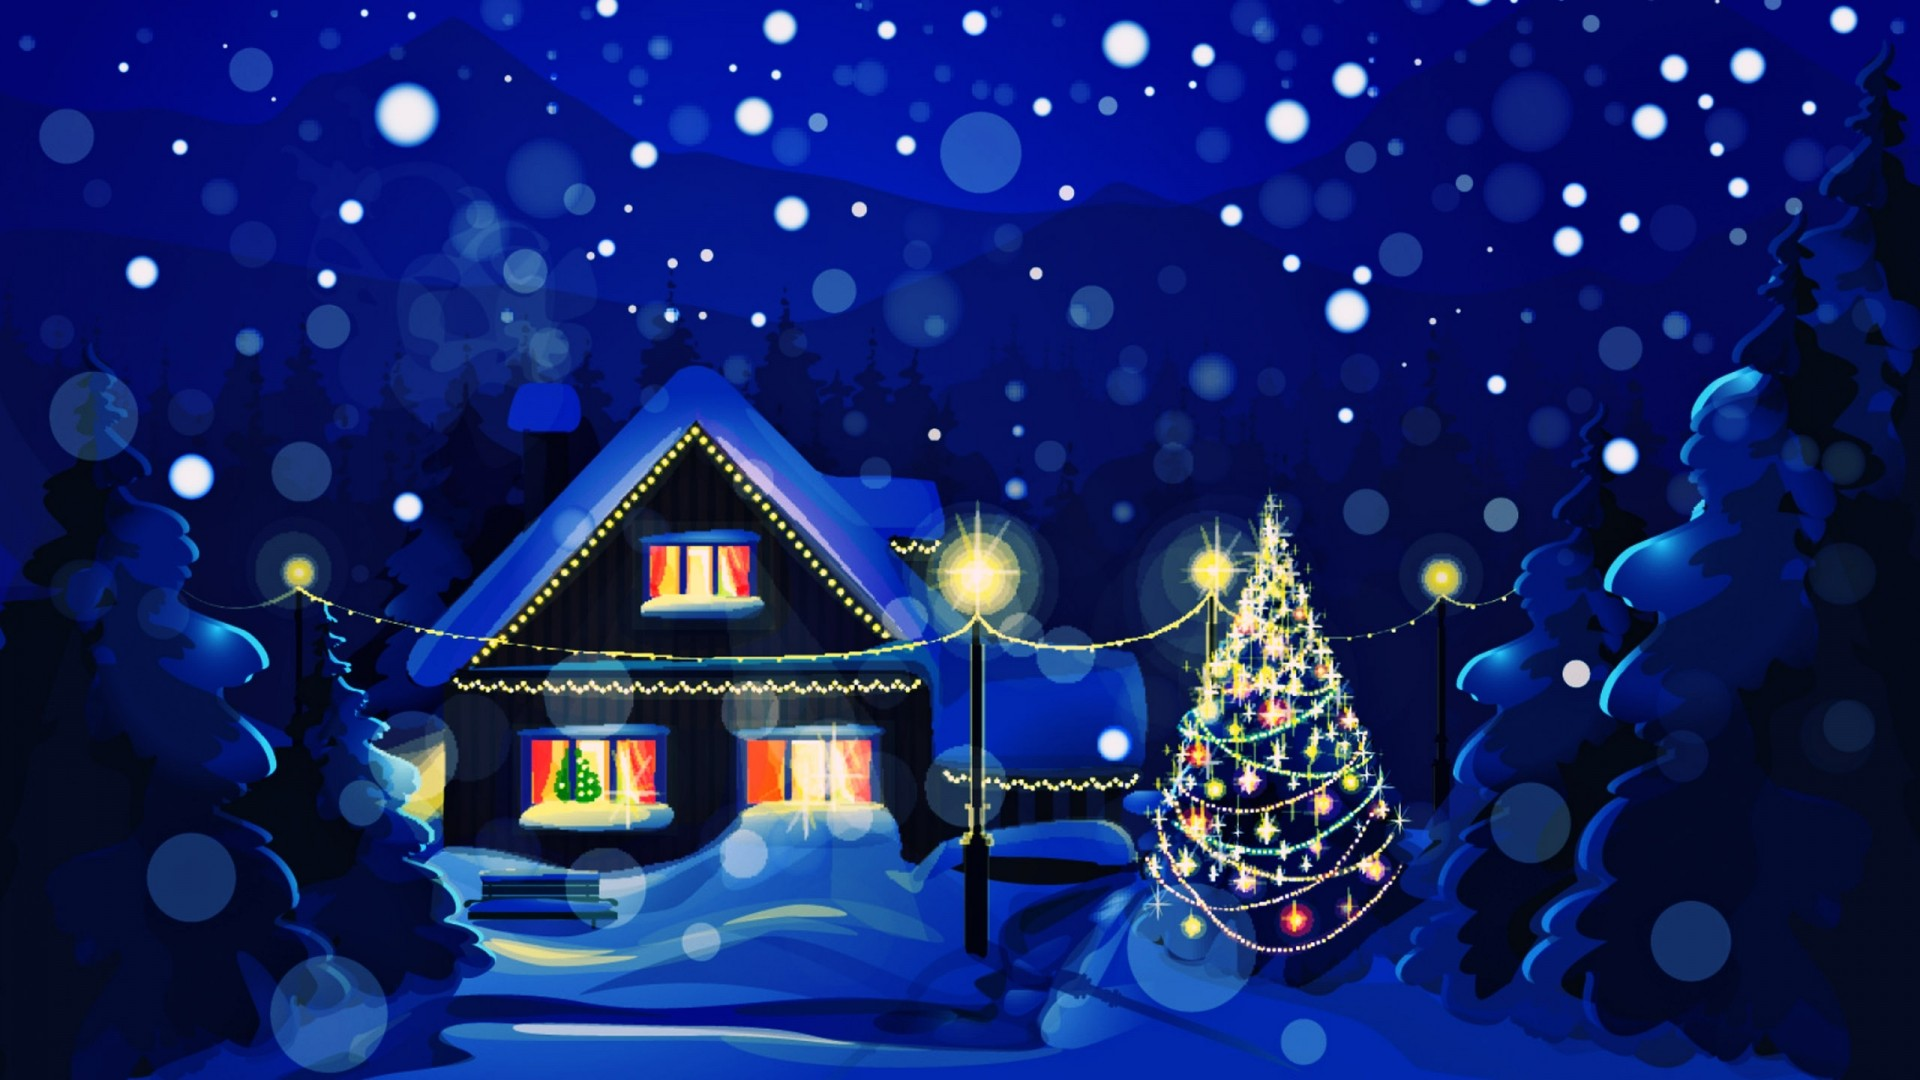 Christmas Hd Wallpaper.Christmas Hd Wallpaper Download Free Wallpapers And